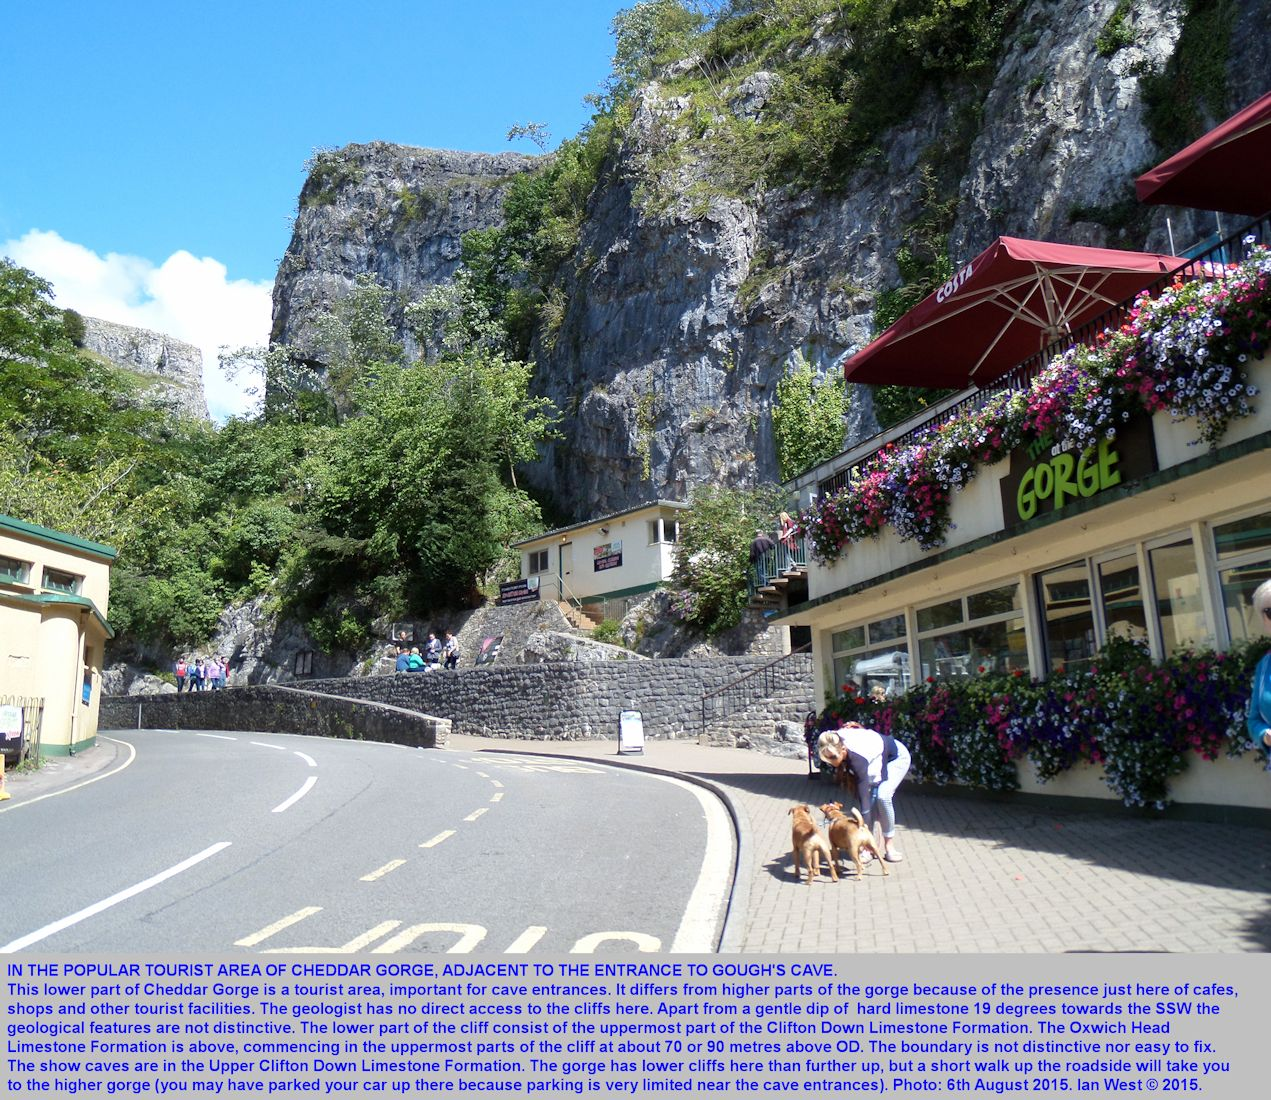 The tourist area near the entrance to Gough's Cave, Cheddar Gorge, Mendip Hills, Somerset